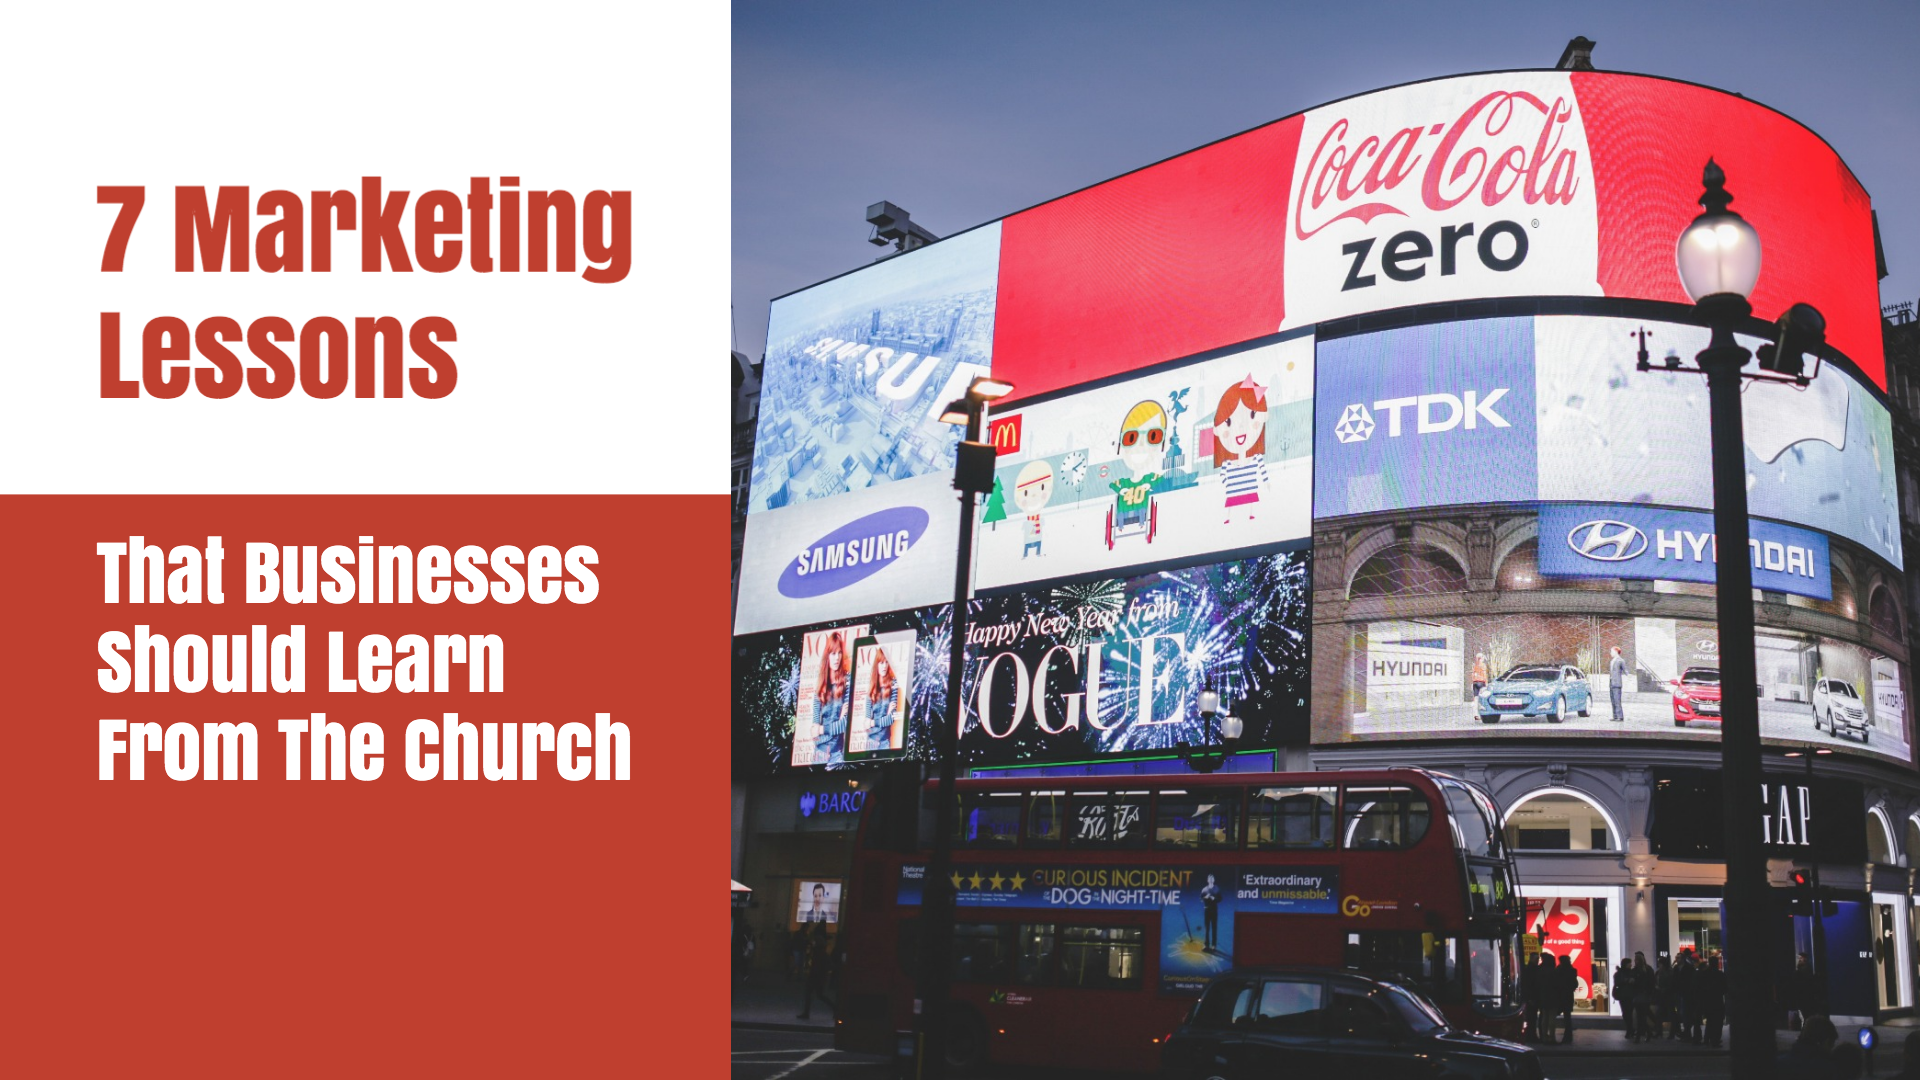 7 Marketing Lessons That Businesses Should Learn From The Church